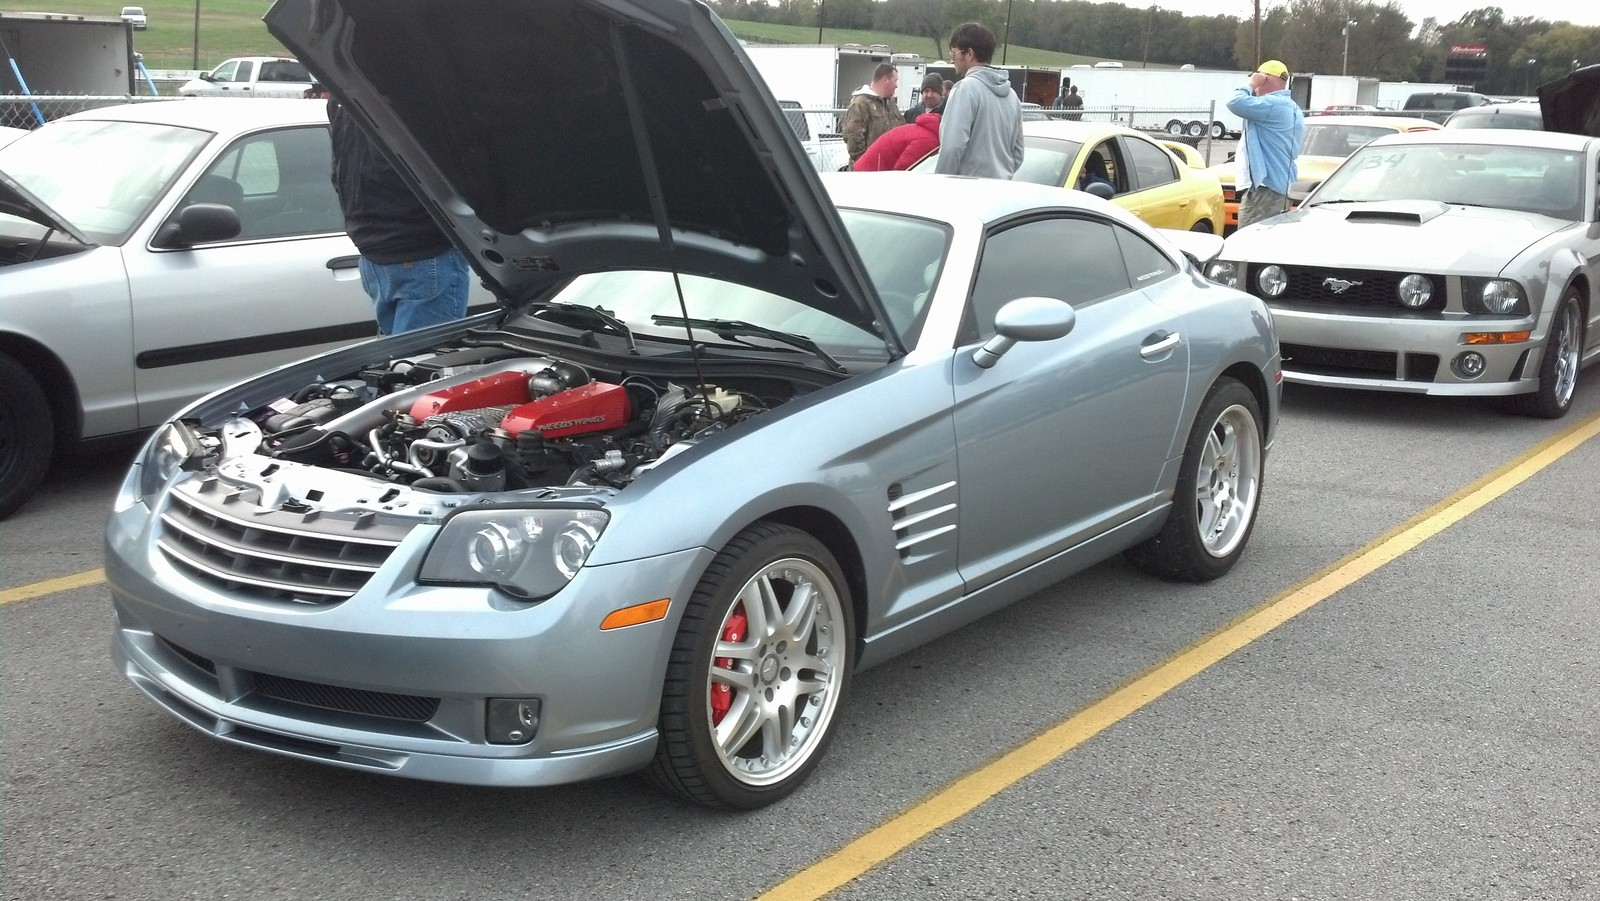 SSB 2005 Chrysler Crossfire SRT6